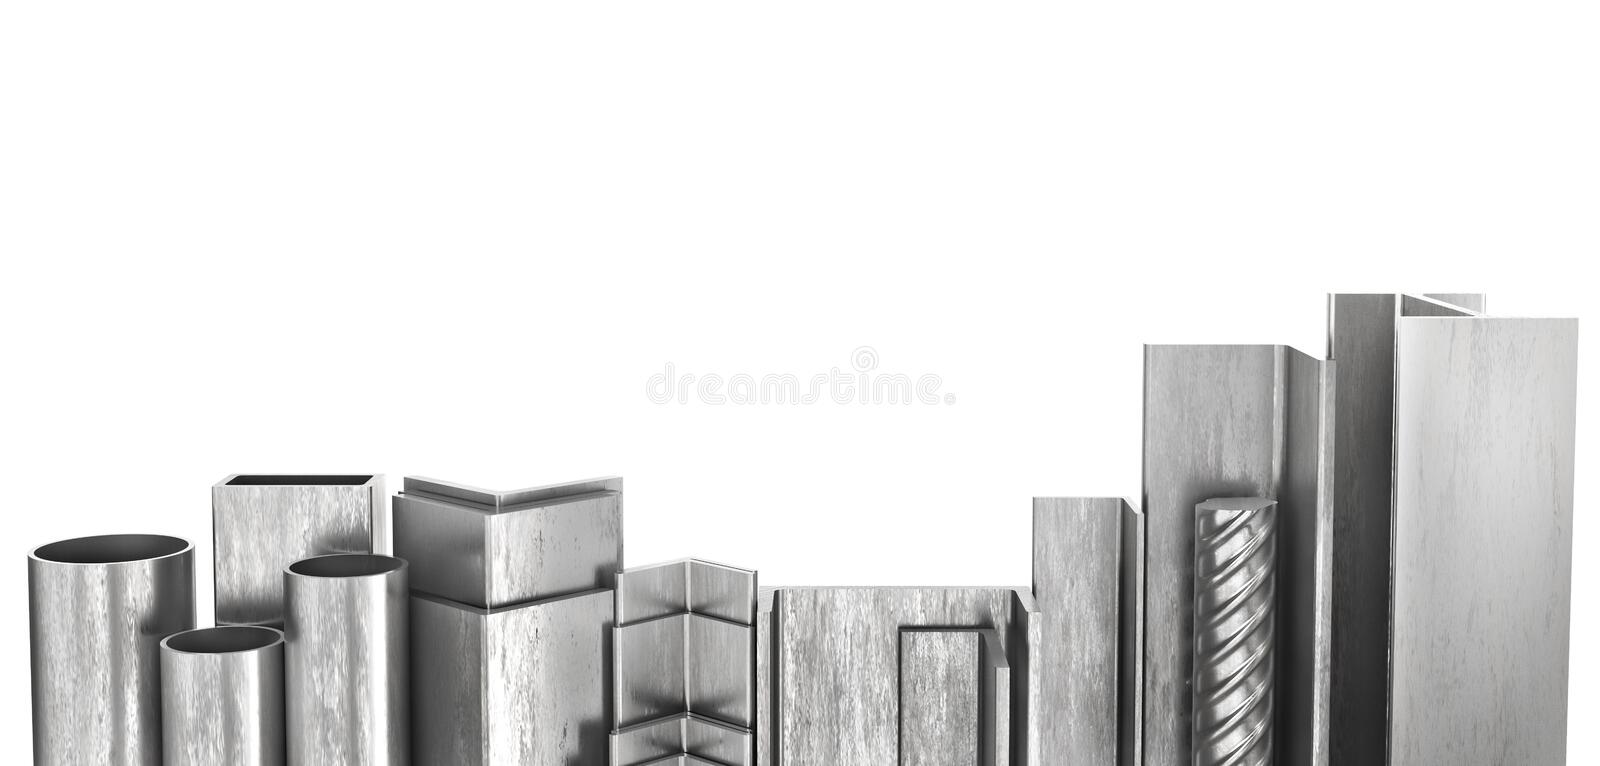 Rolled metal products. Steel profiles and tubes. 3d. Illustration royalty free illustration